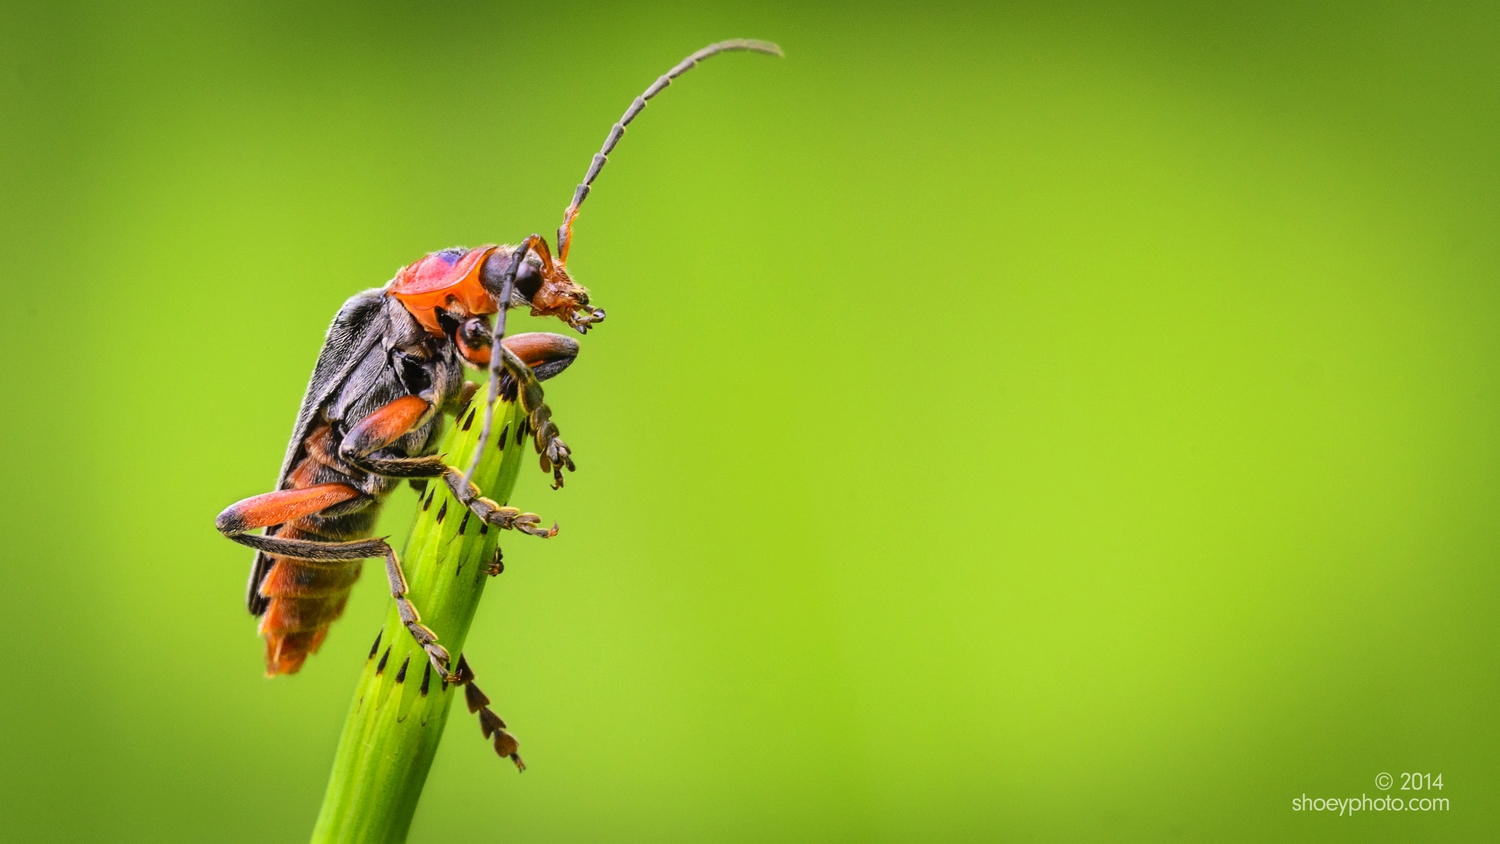 A Soldier Beetle